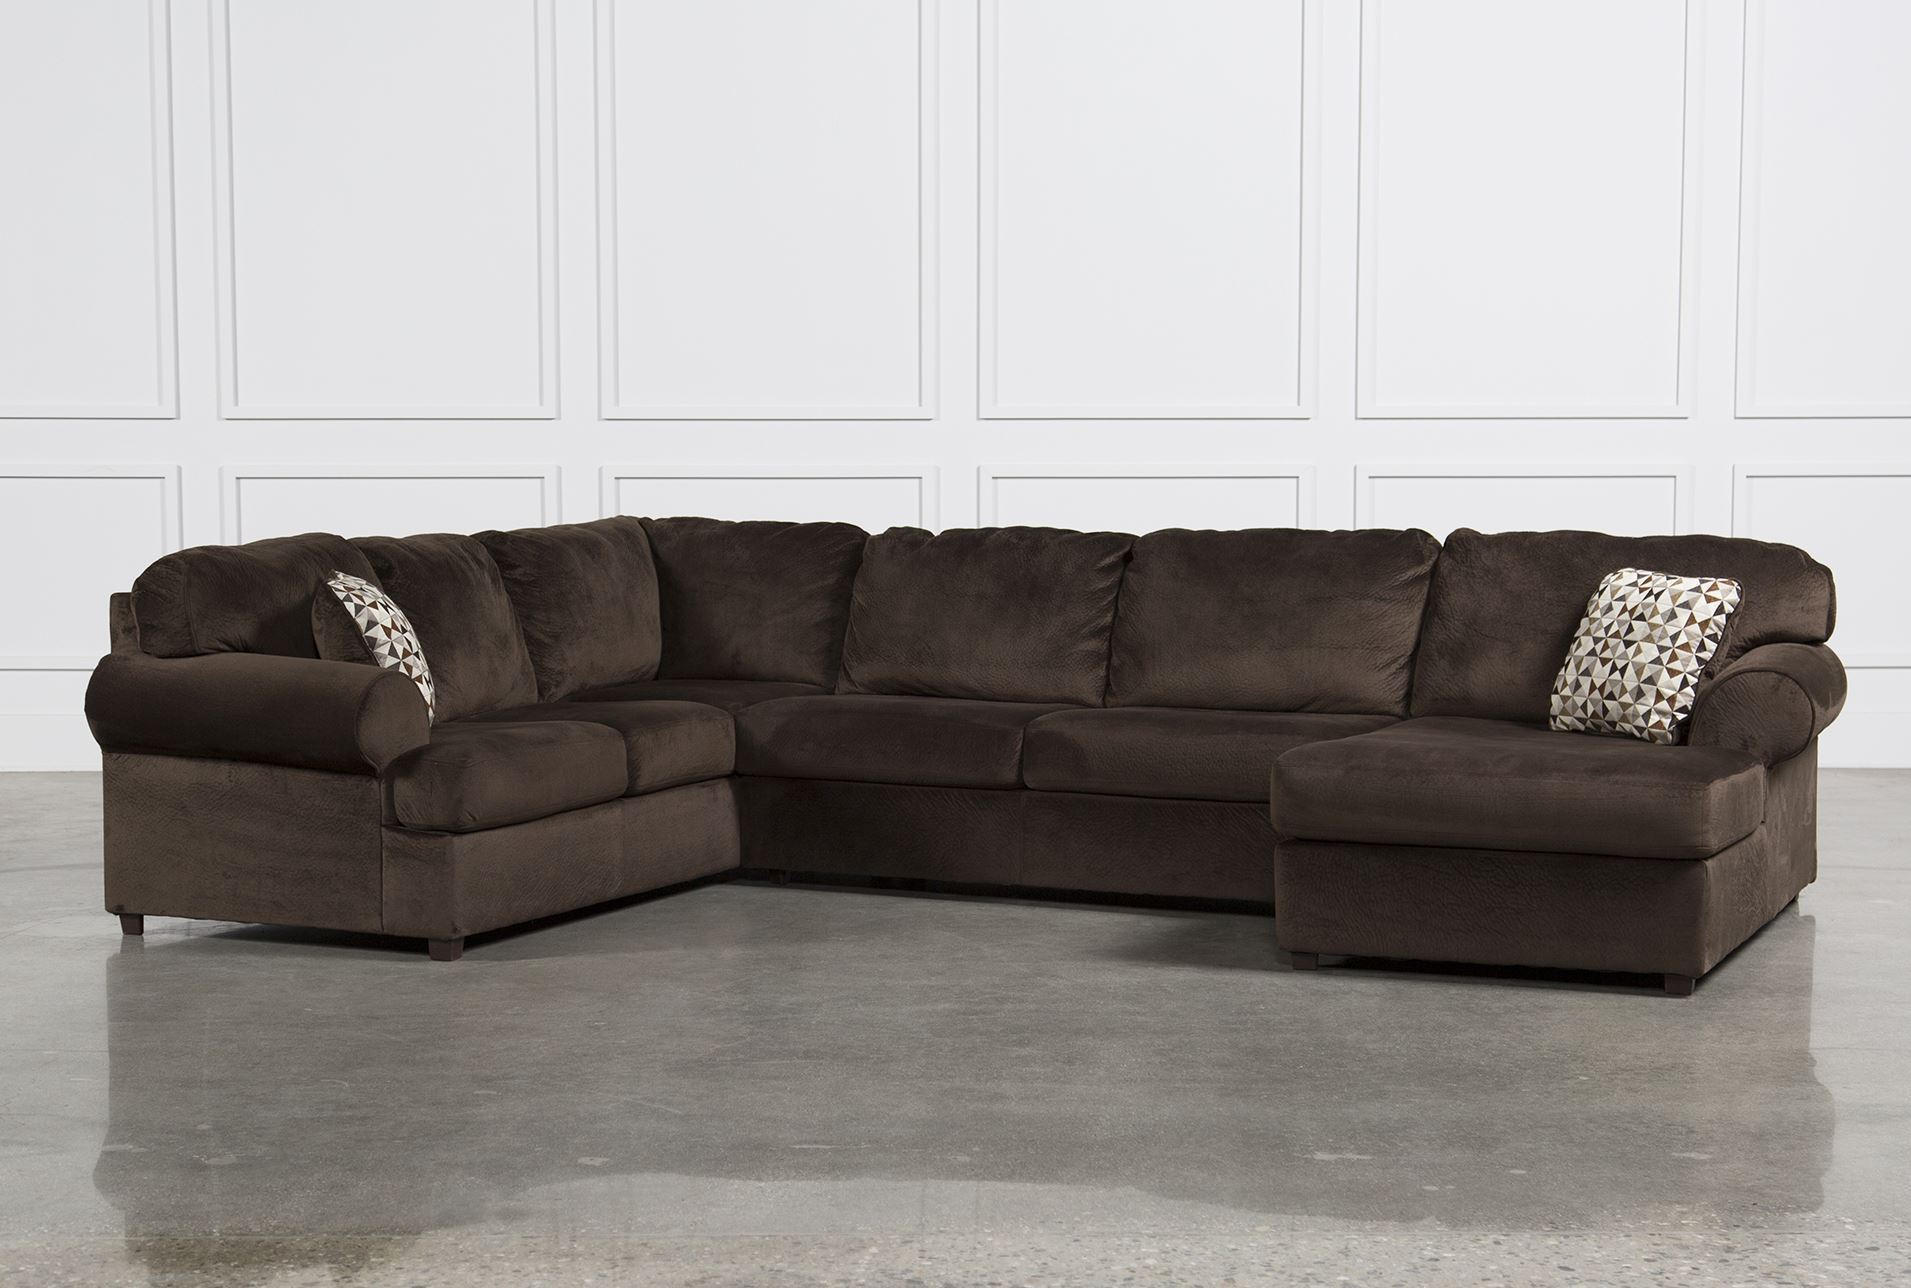 Jessa place chocolate 3 piece sectional w raf chaise for Living spaces couches